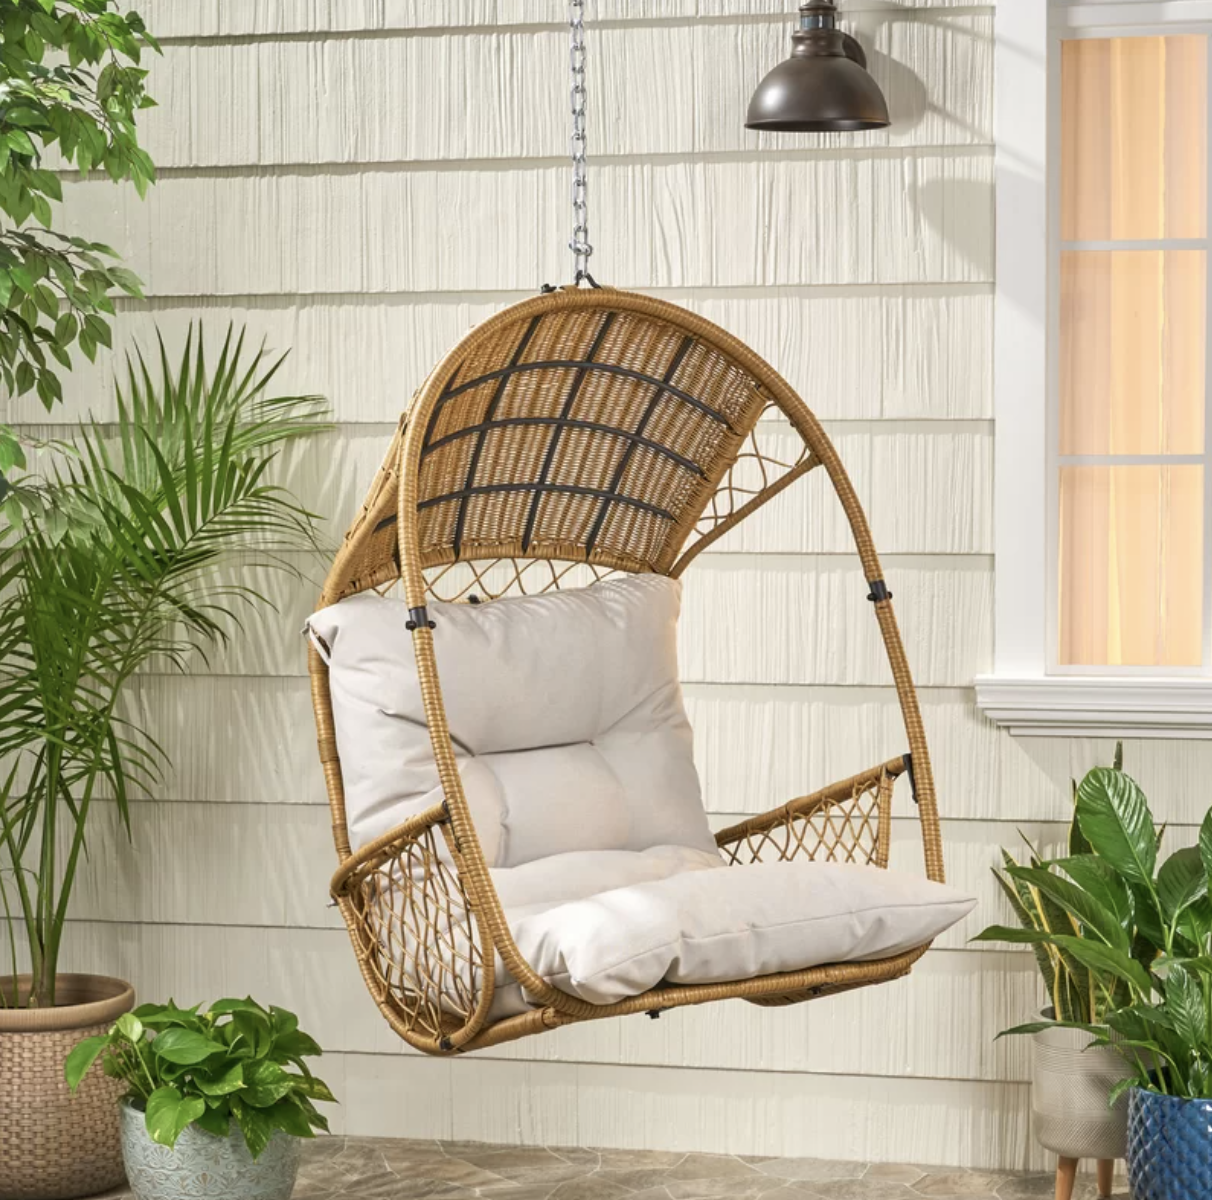 Berkshire Swing Chair With Cushion, Target Southport Patio Egg Chair, Target Southport Patio Egg Chair dupes, affordable dupes for the Target Southport Patio Egg Chair, egg chair inspiration, egg chair home ideas, egg chairs, wicker egg chairs, hanging egg chairs, target dupes, target furniture dupes, target patio furniture, Red Soles and Red Wine